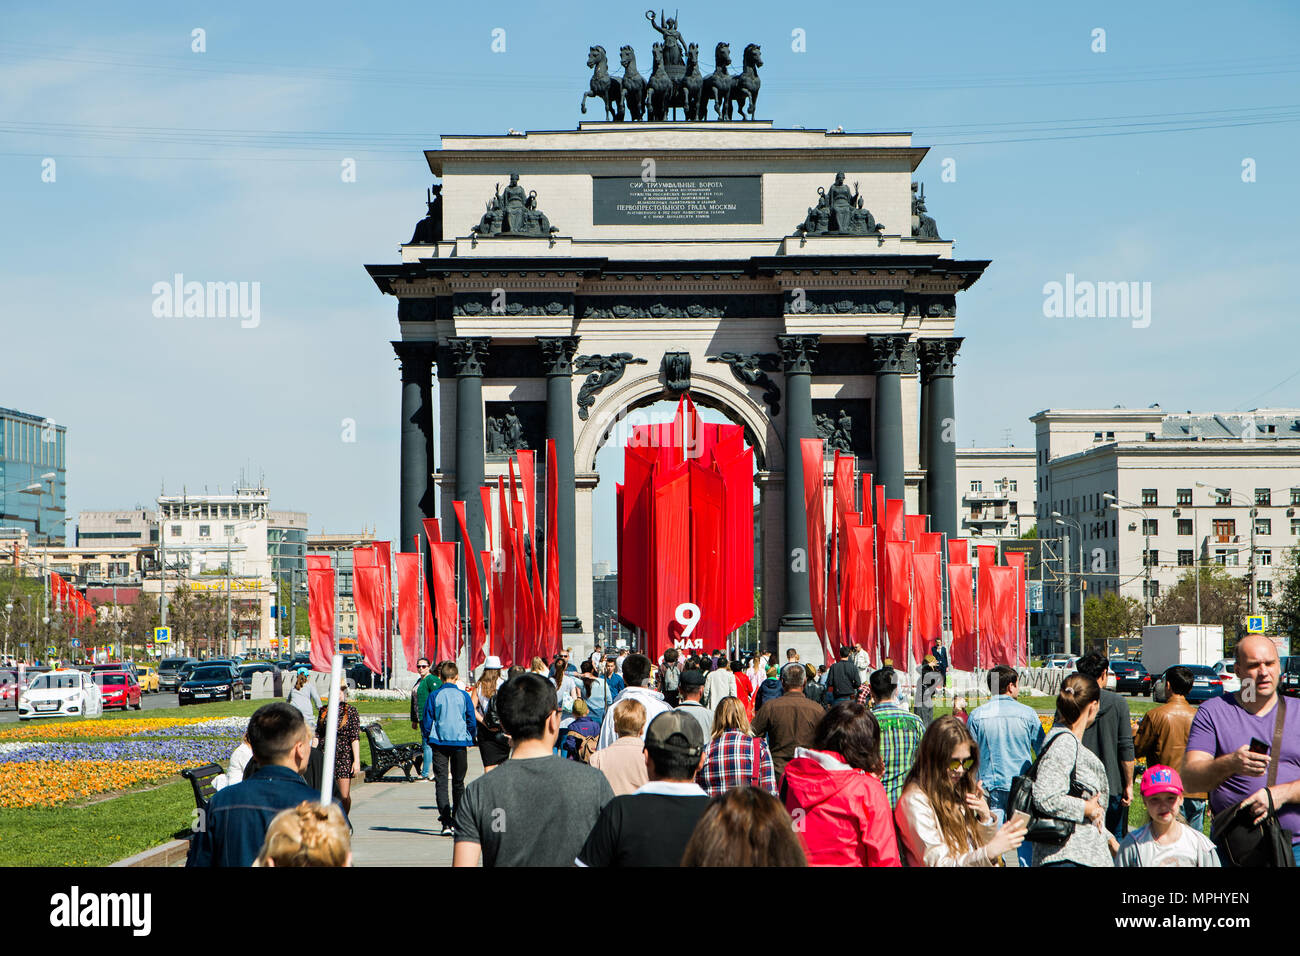 Moscow,Russia, May 9, 2018: The triumphal gate on Victory Day decorated with red flags and the crowd of people. - Stock Image